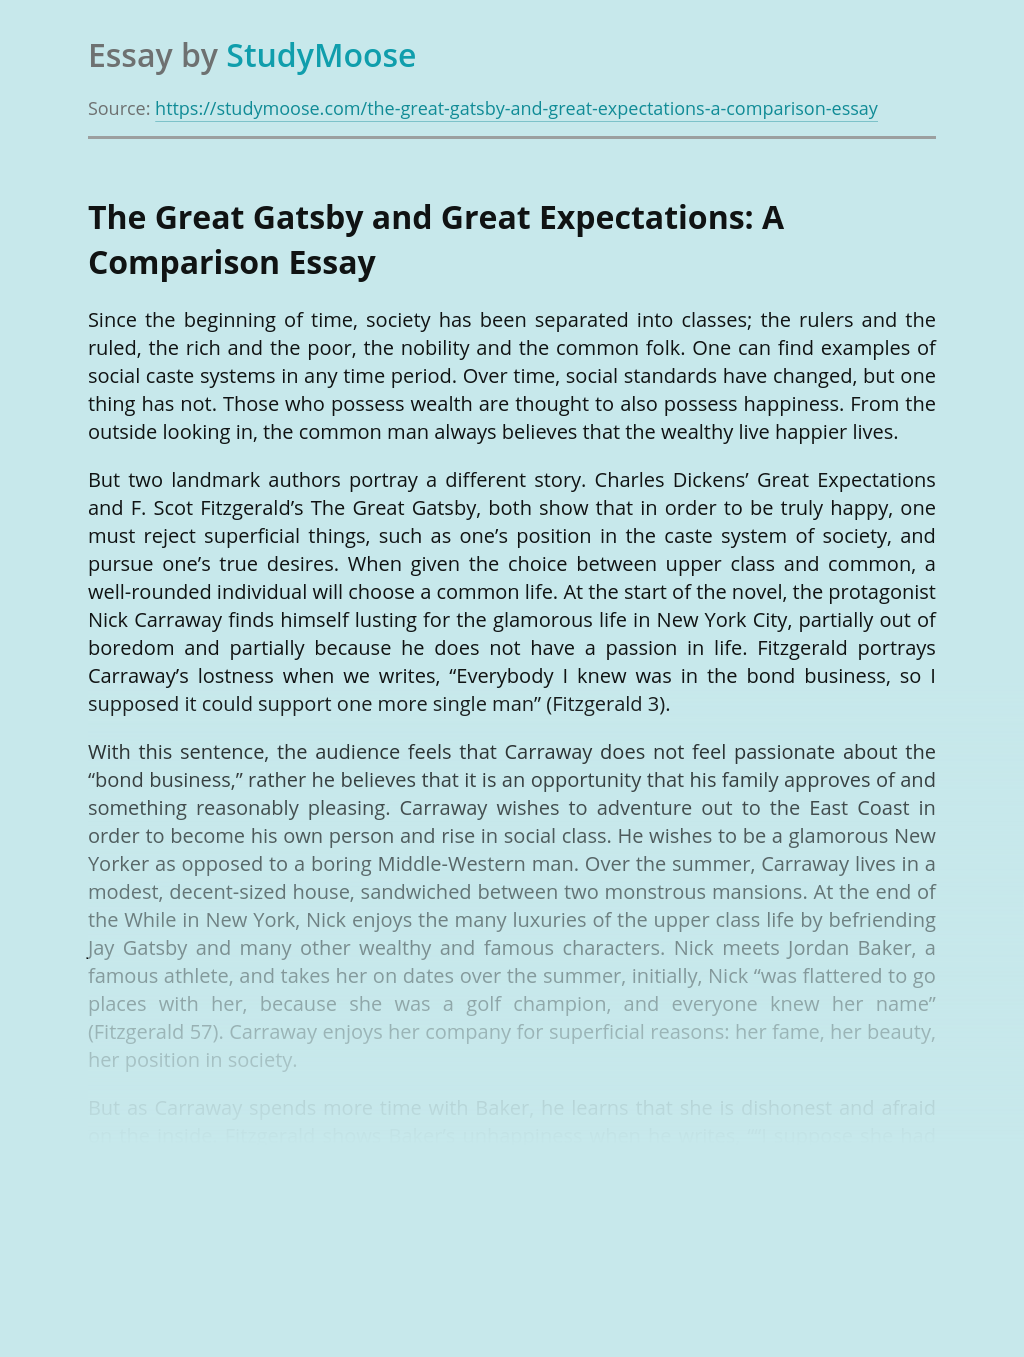 The Great Gatsby and Great Expectations: A Comparison